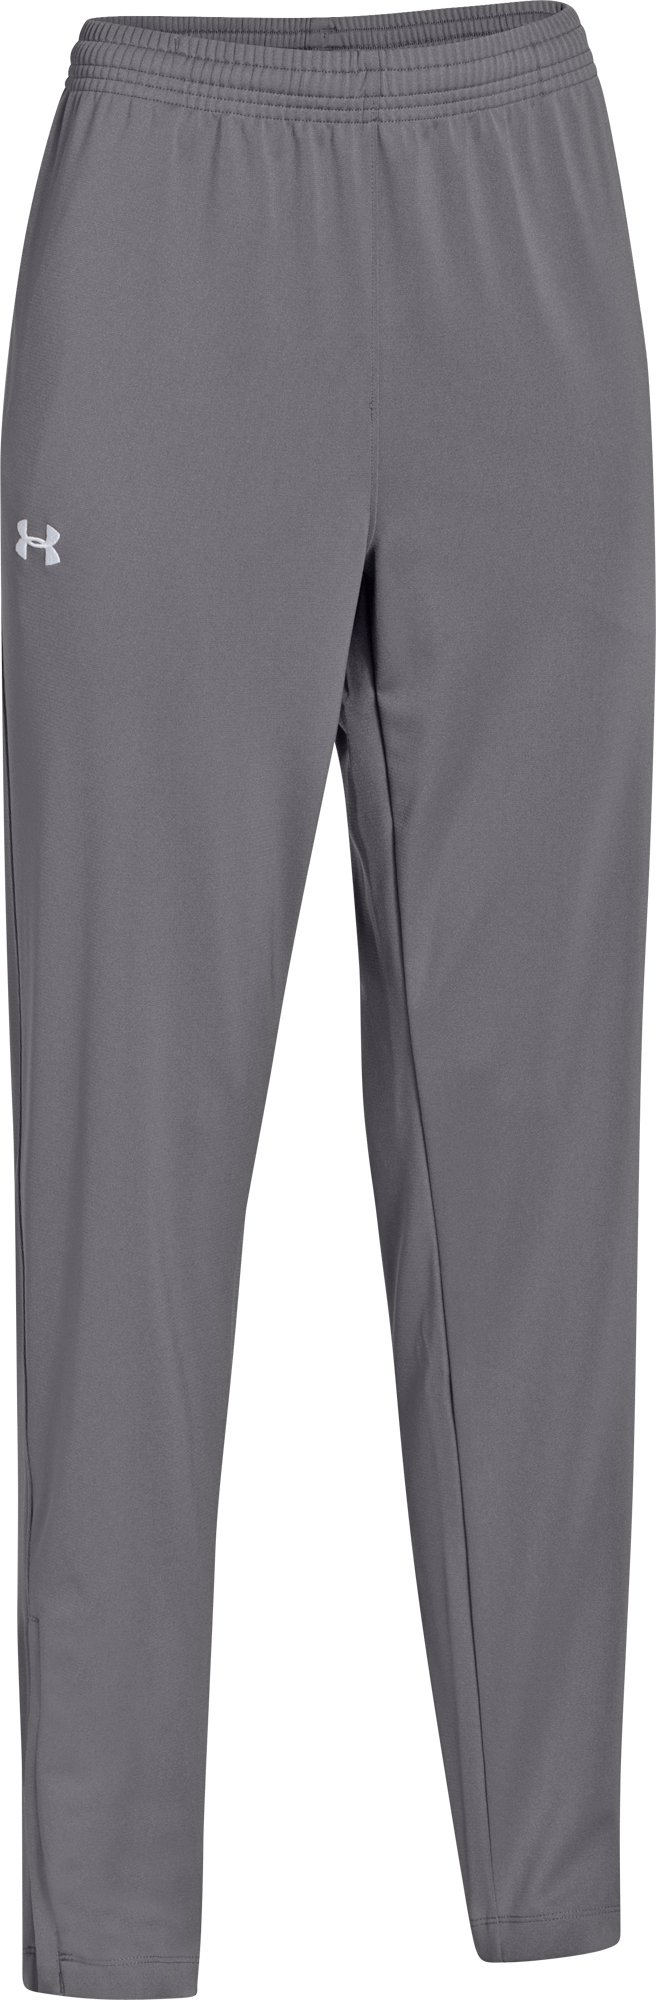 Under Armour Kids Boys UA Futbolista Soccer Pants (Big Kids), Graphite/White, XL (18-20 X One Size